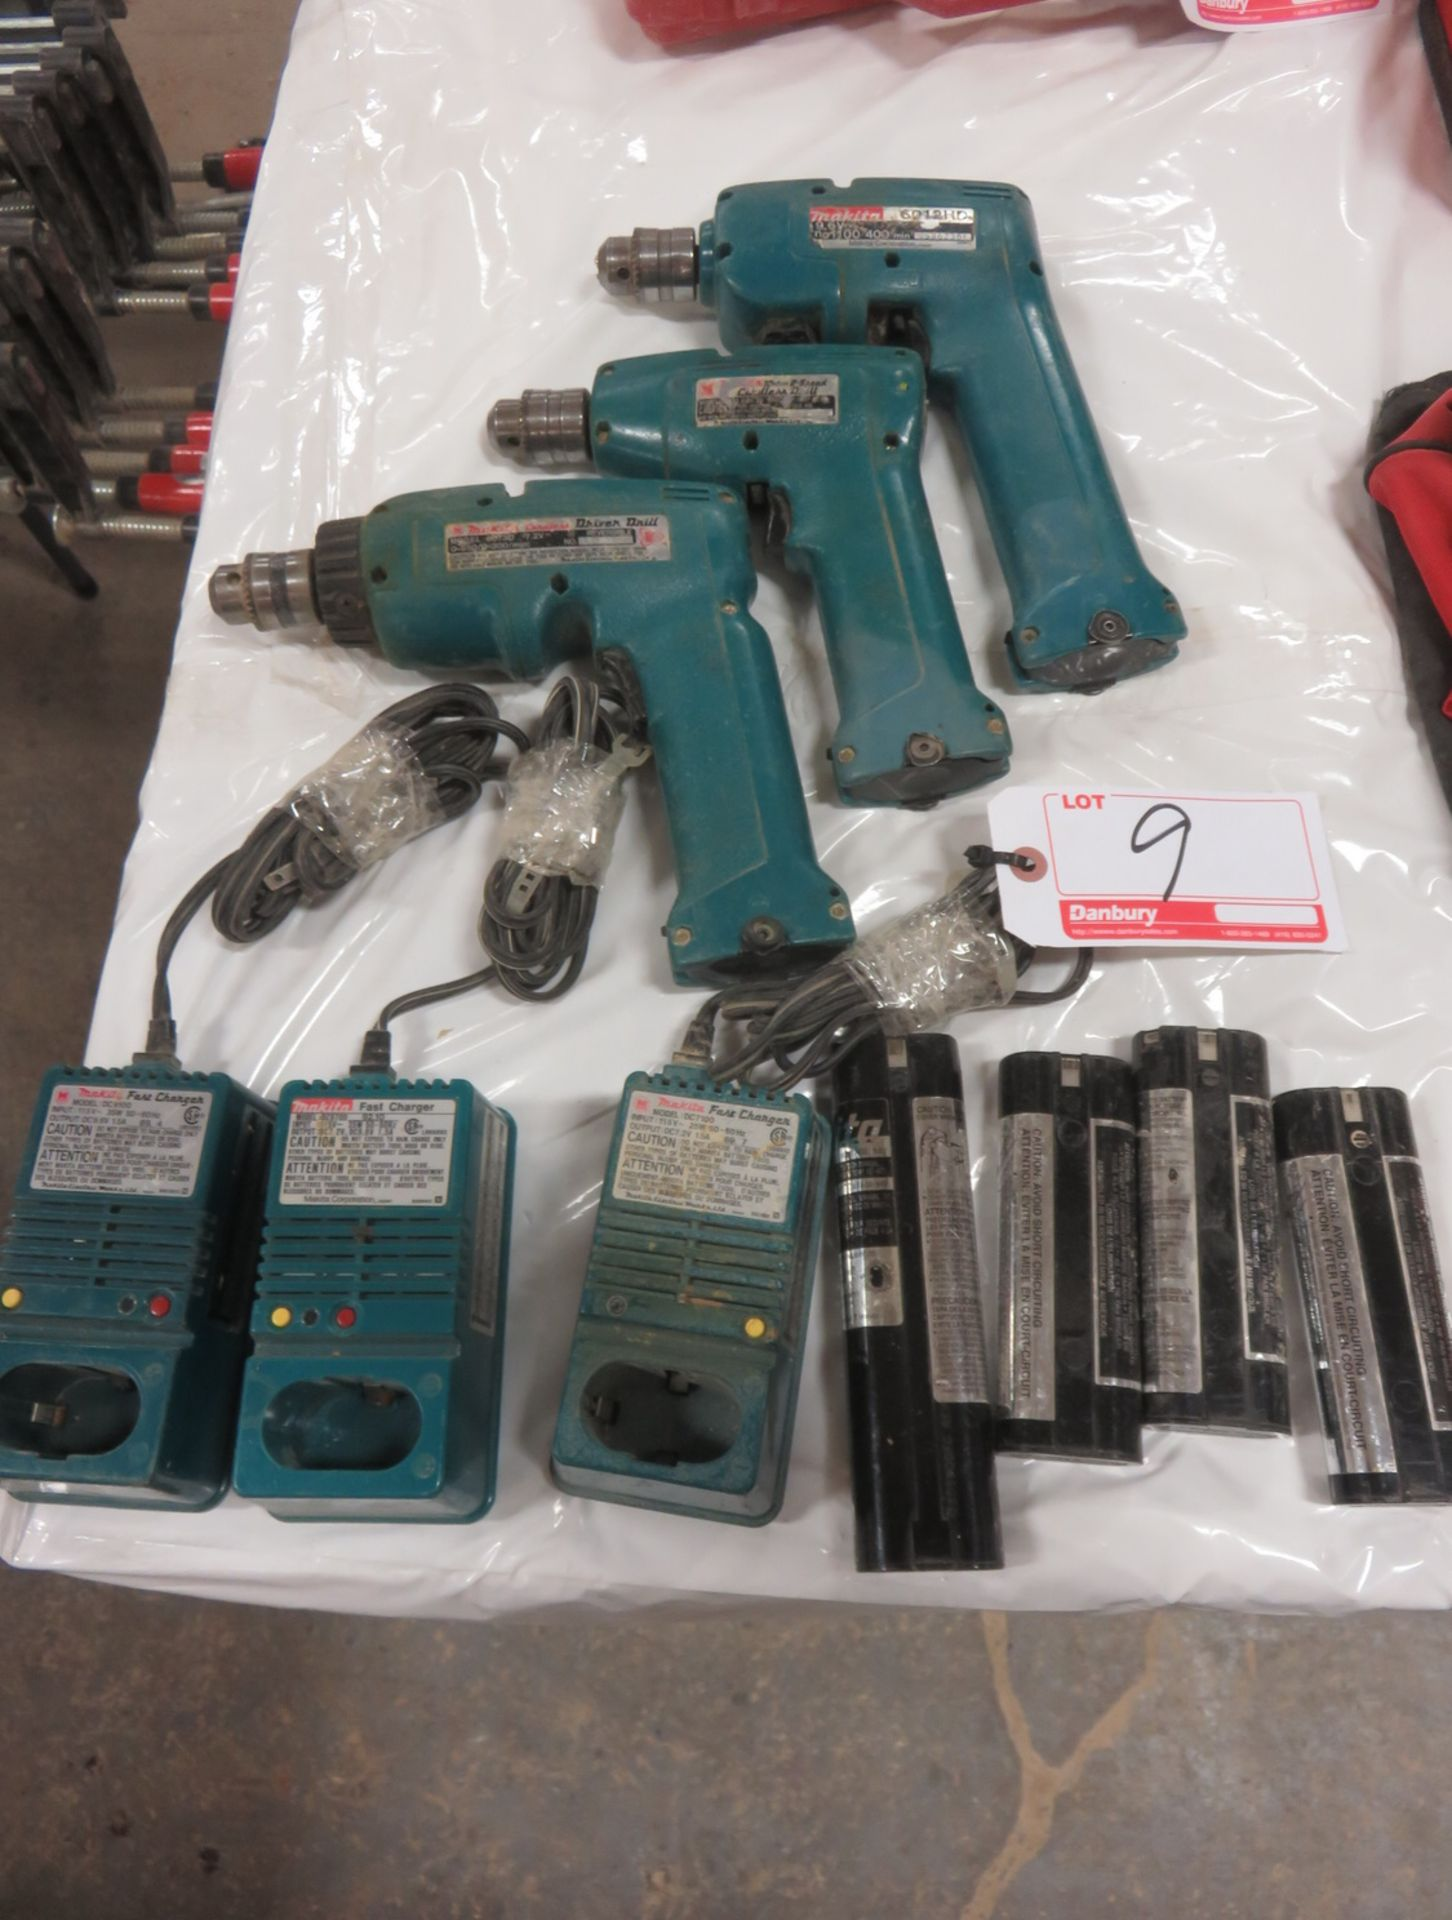 Lot 9 - LOT - MAKITA 7.2V + 9.6V ASSTD BATTERY DRILLS W. CHARGERS & BATTERIES